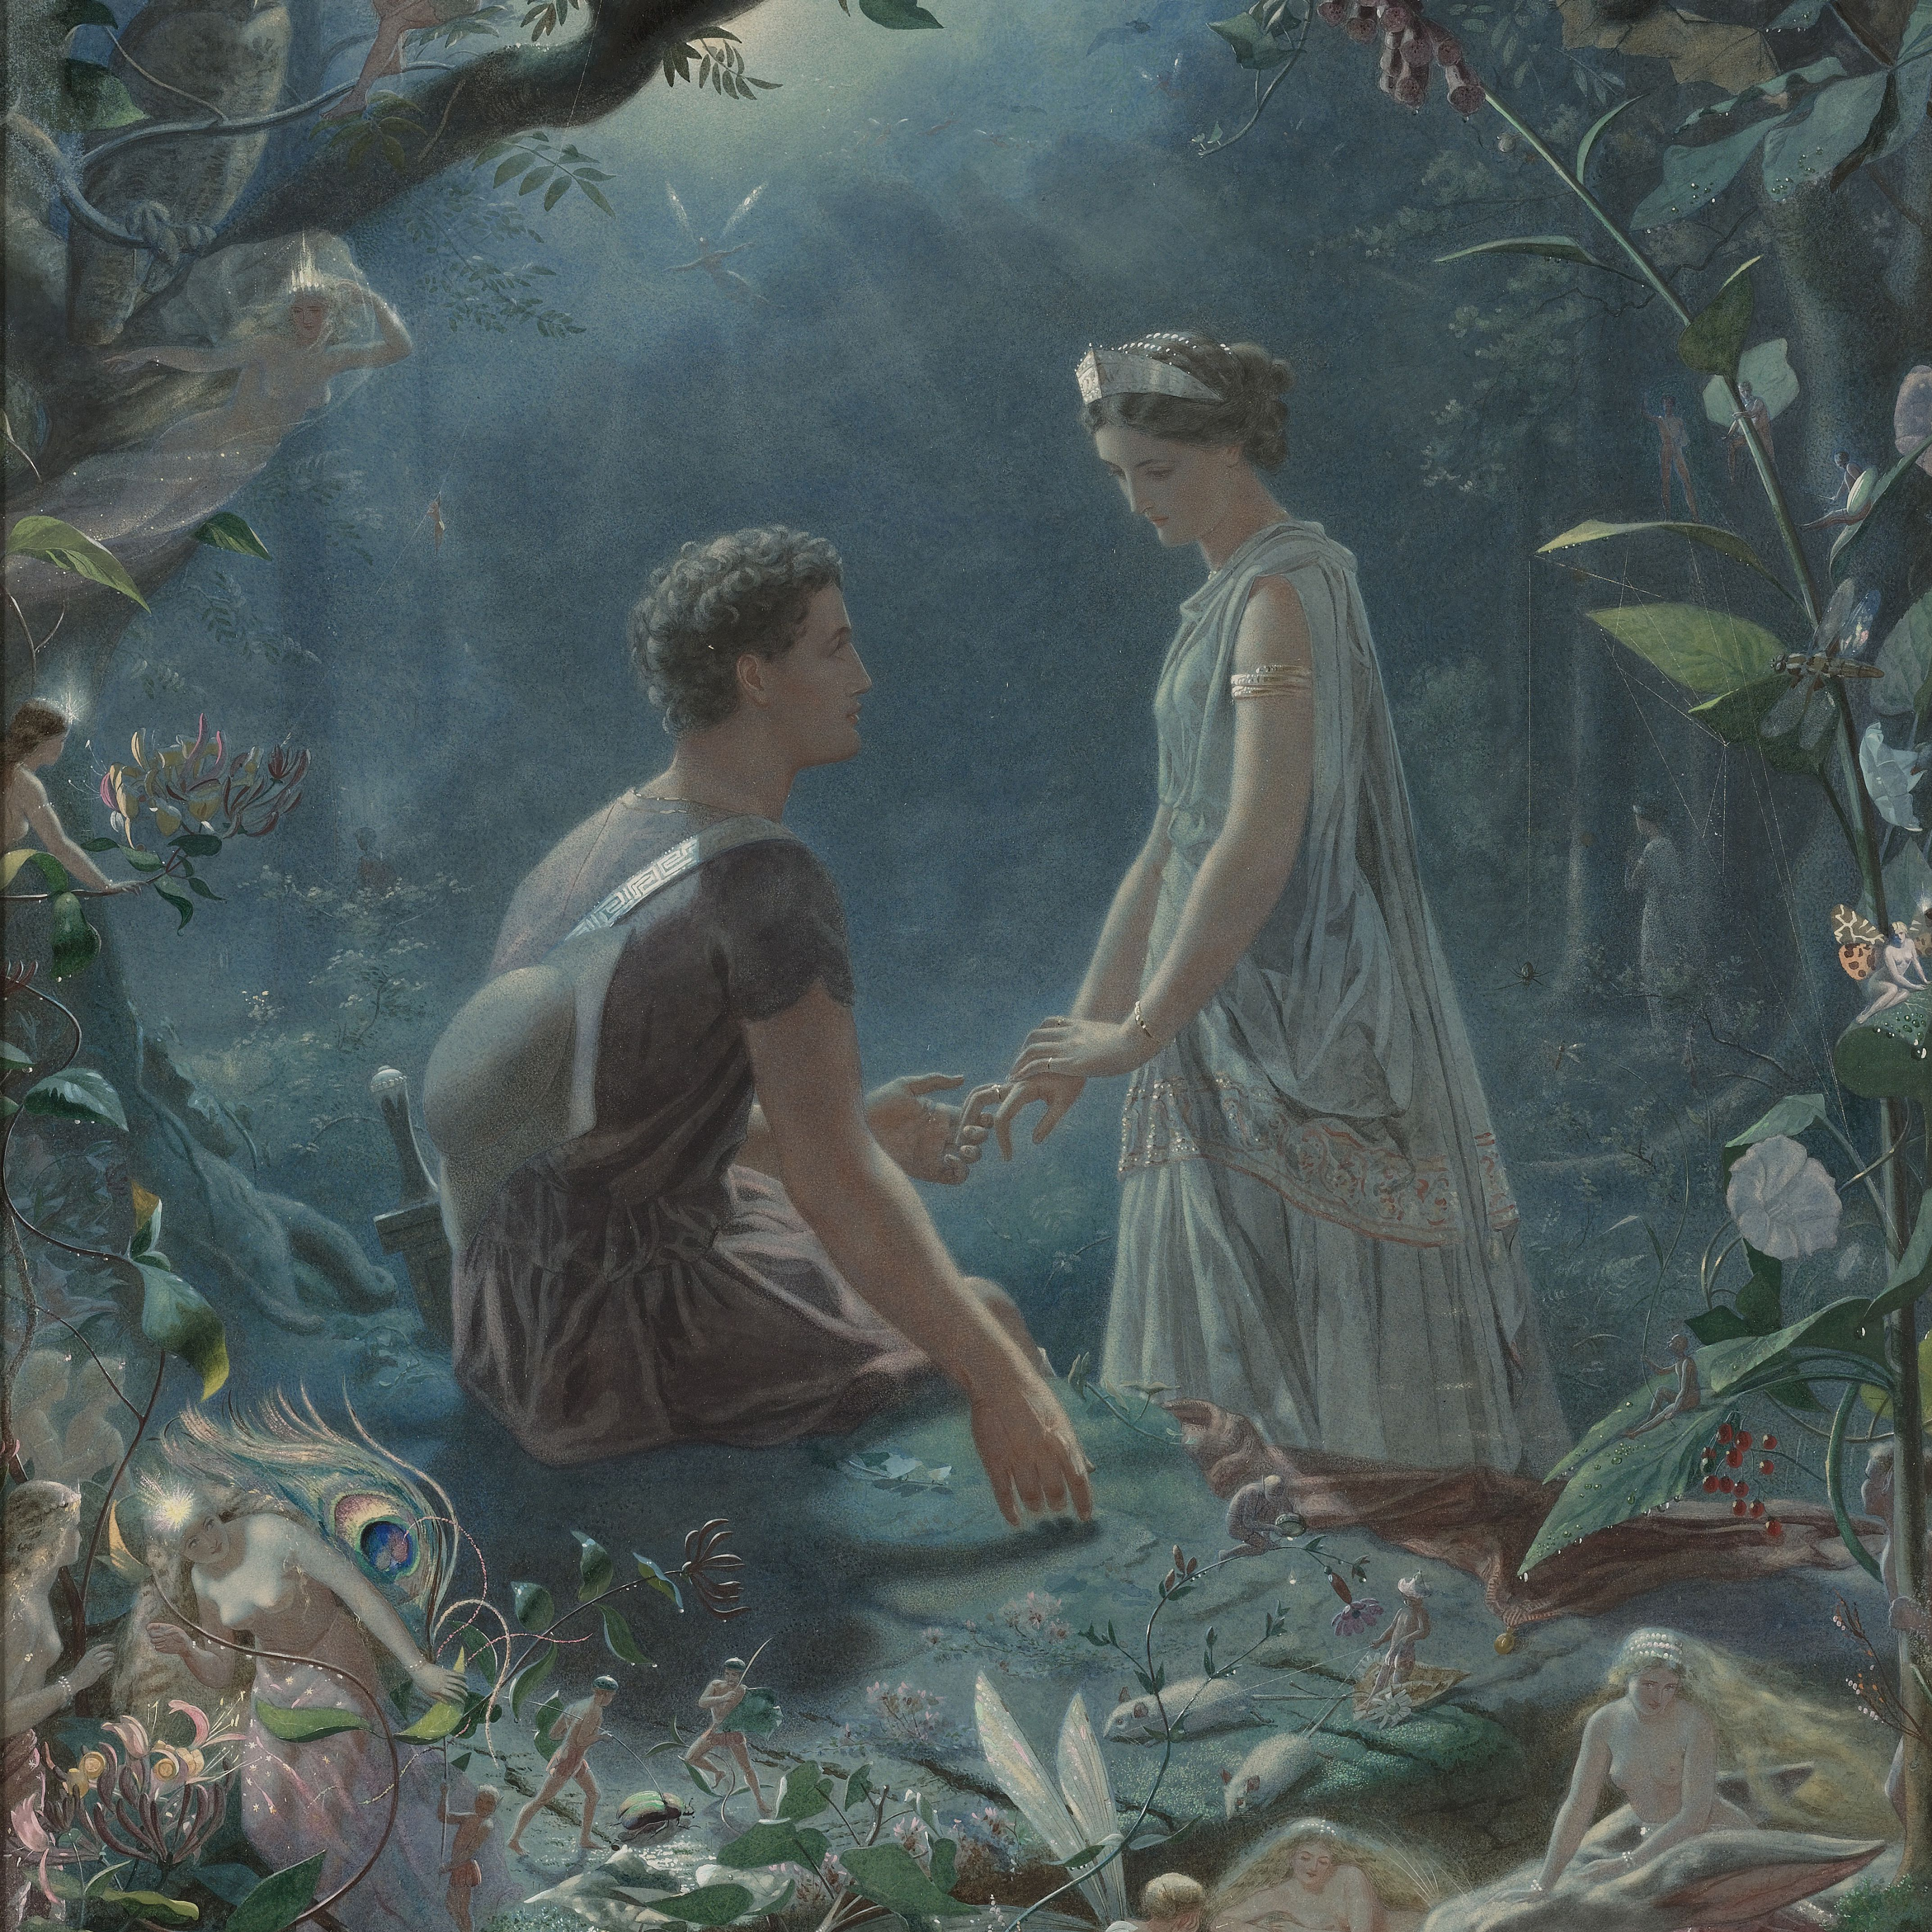 Hermia and Lysander from A Midsummer Night's Dream